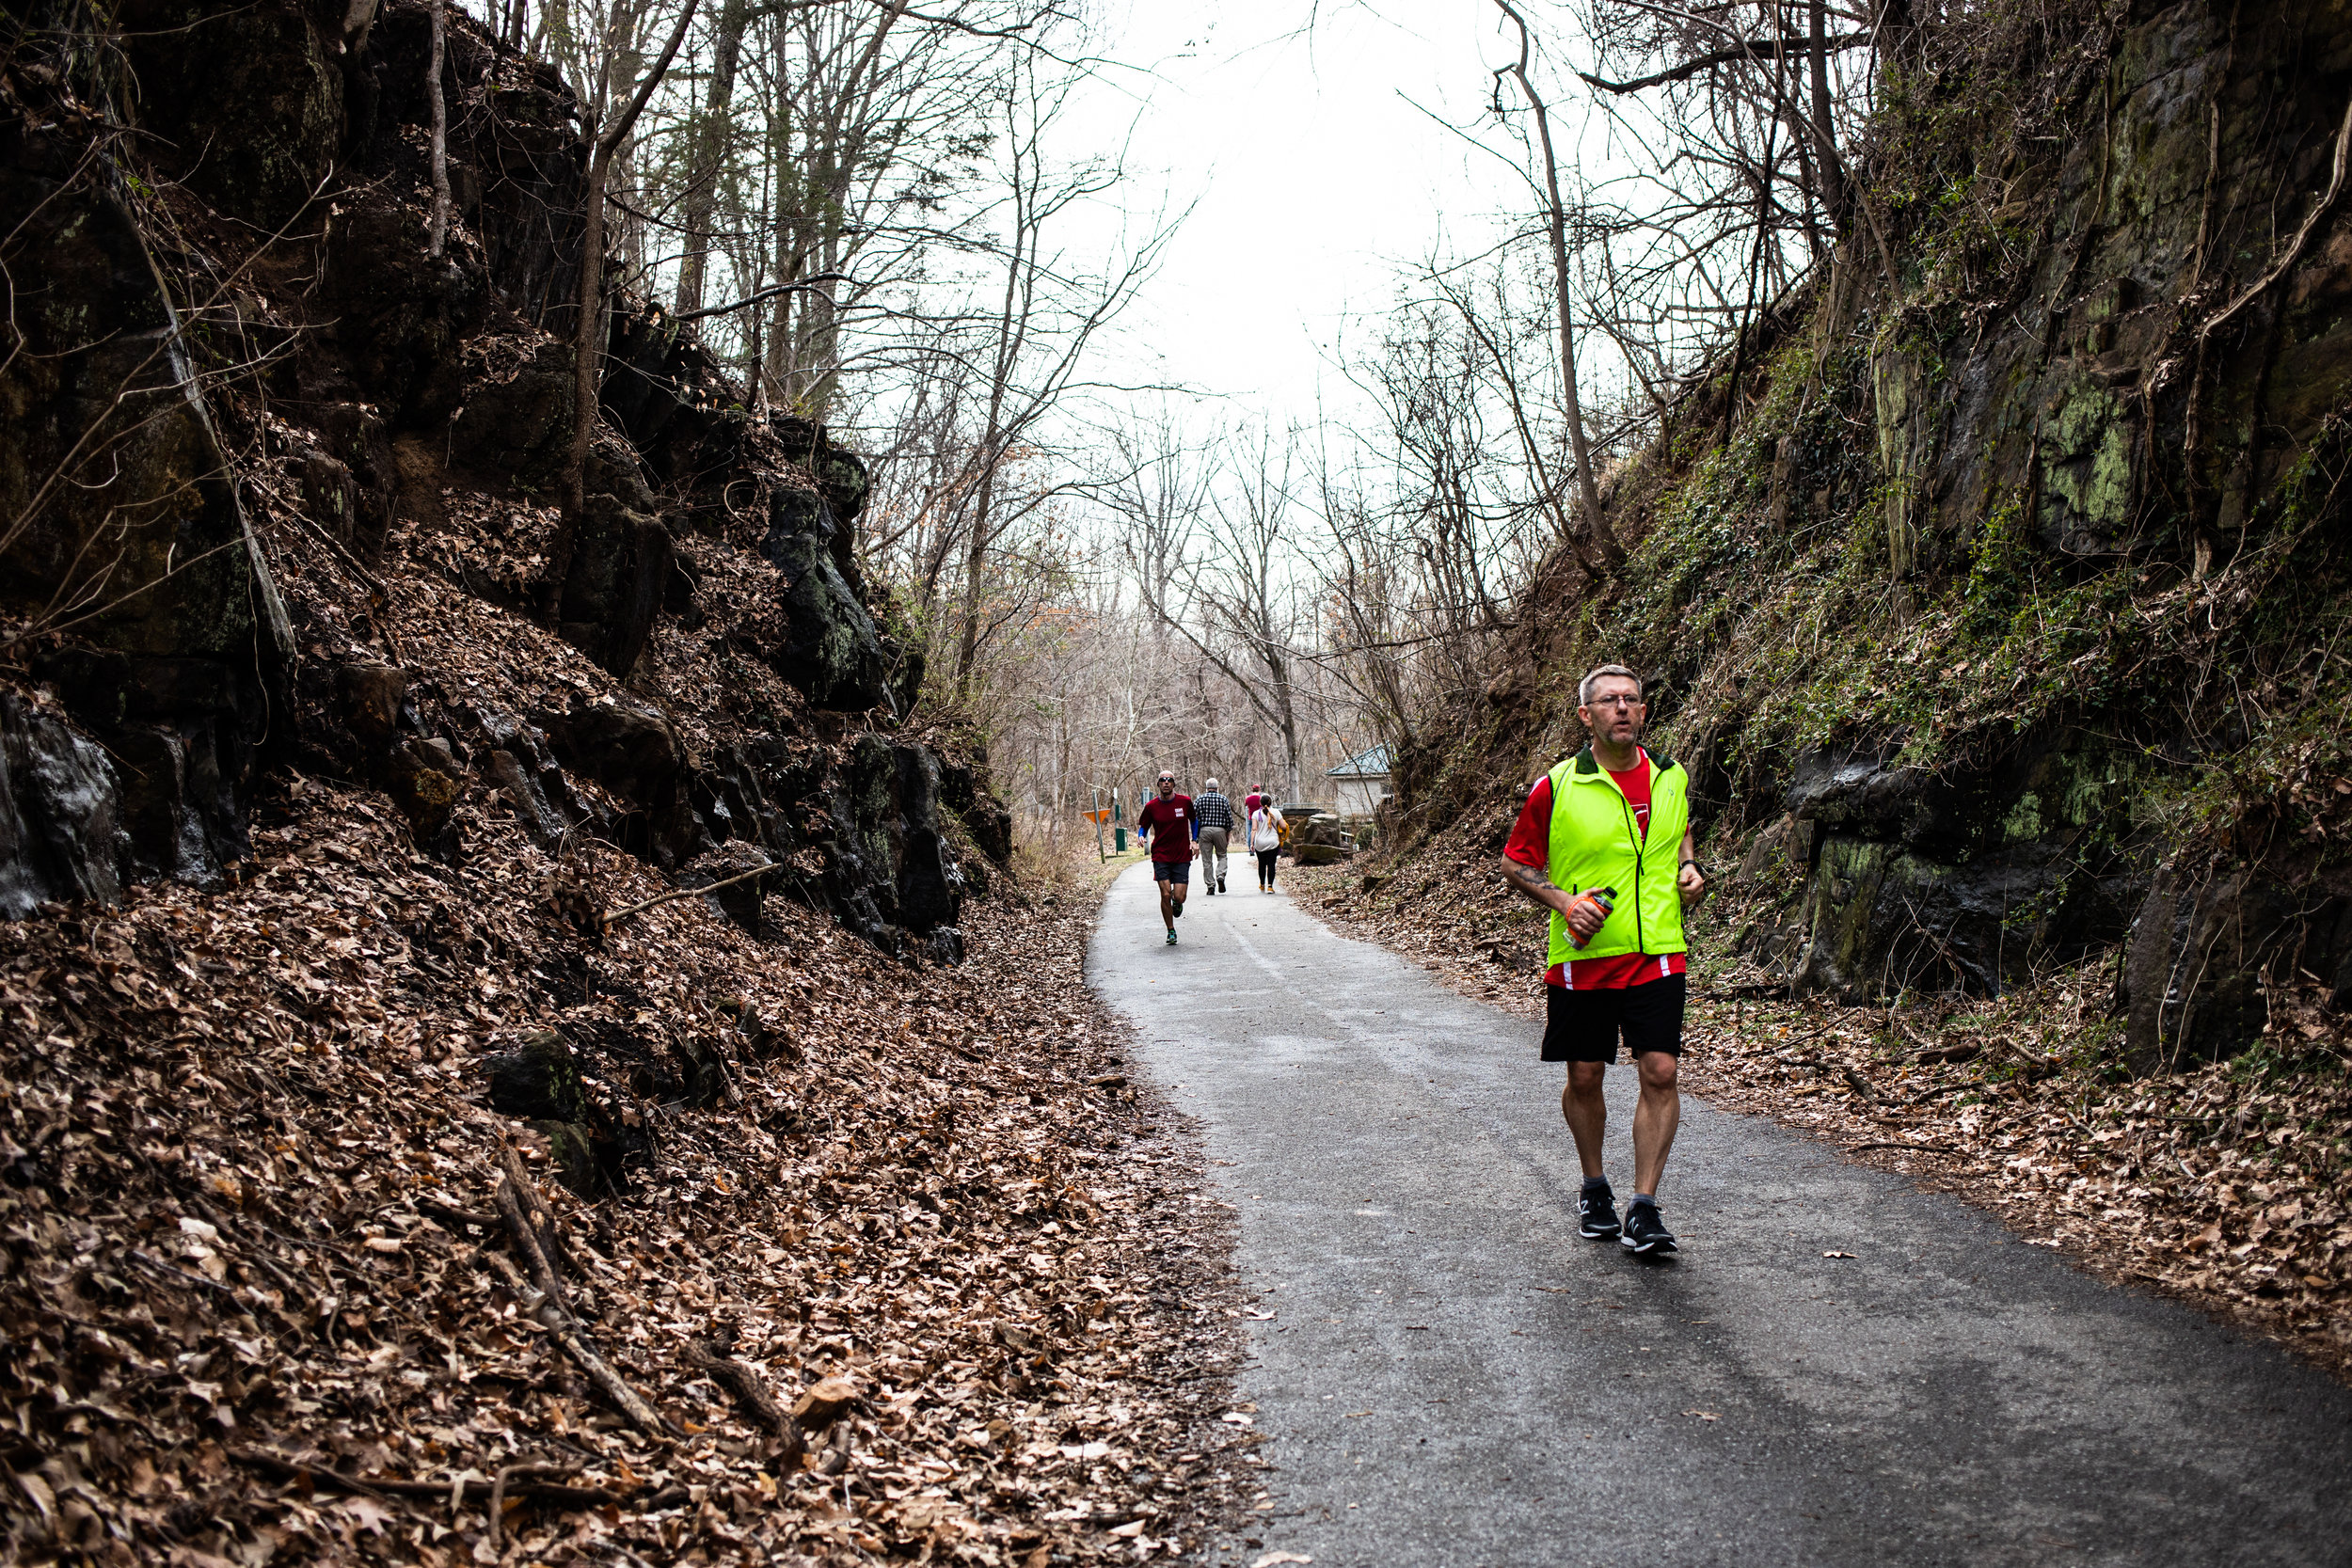 John Langston of Forest runs down Blackwater Creek Trail on March 10, 2019 in Lynchburg, VA.